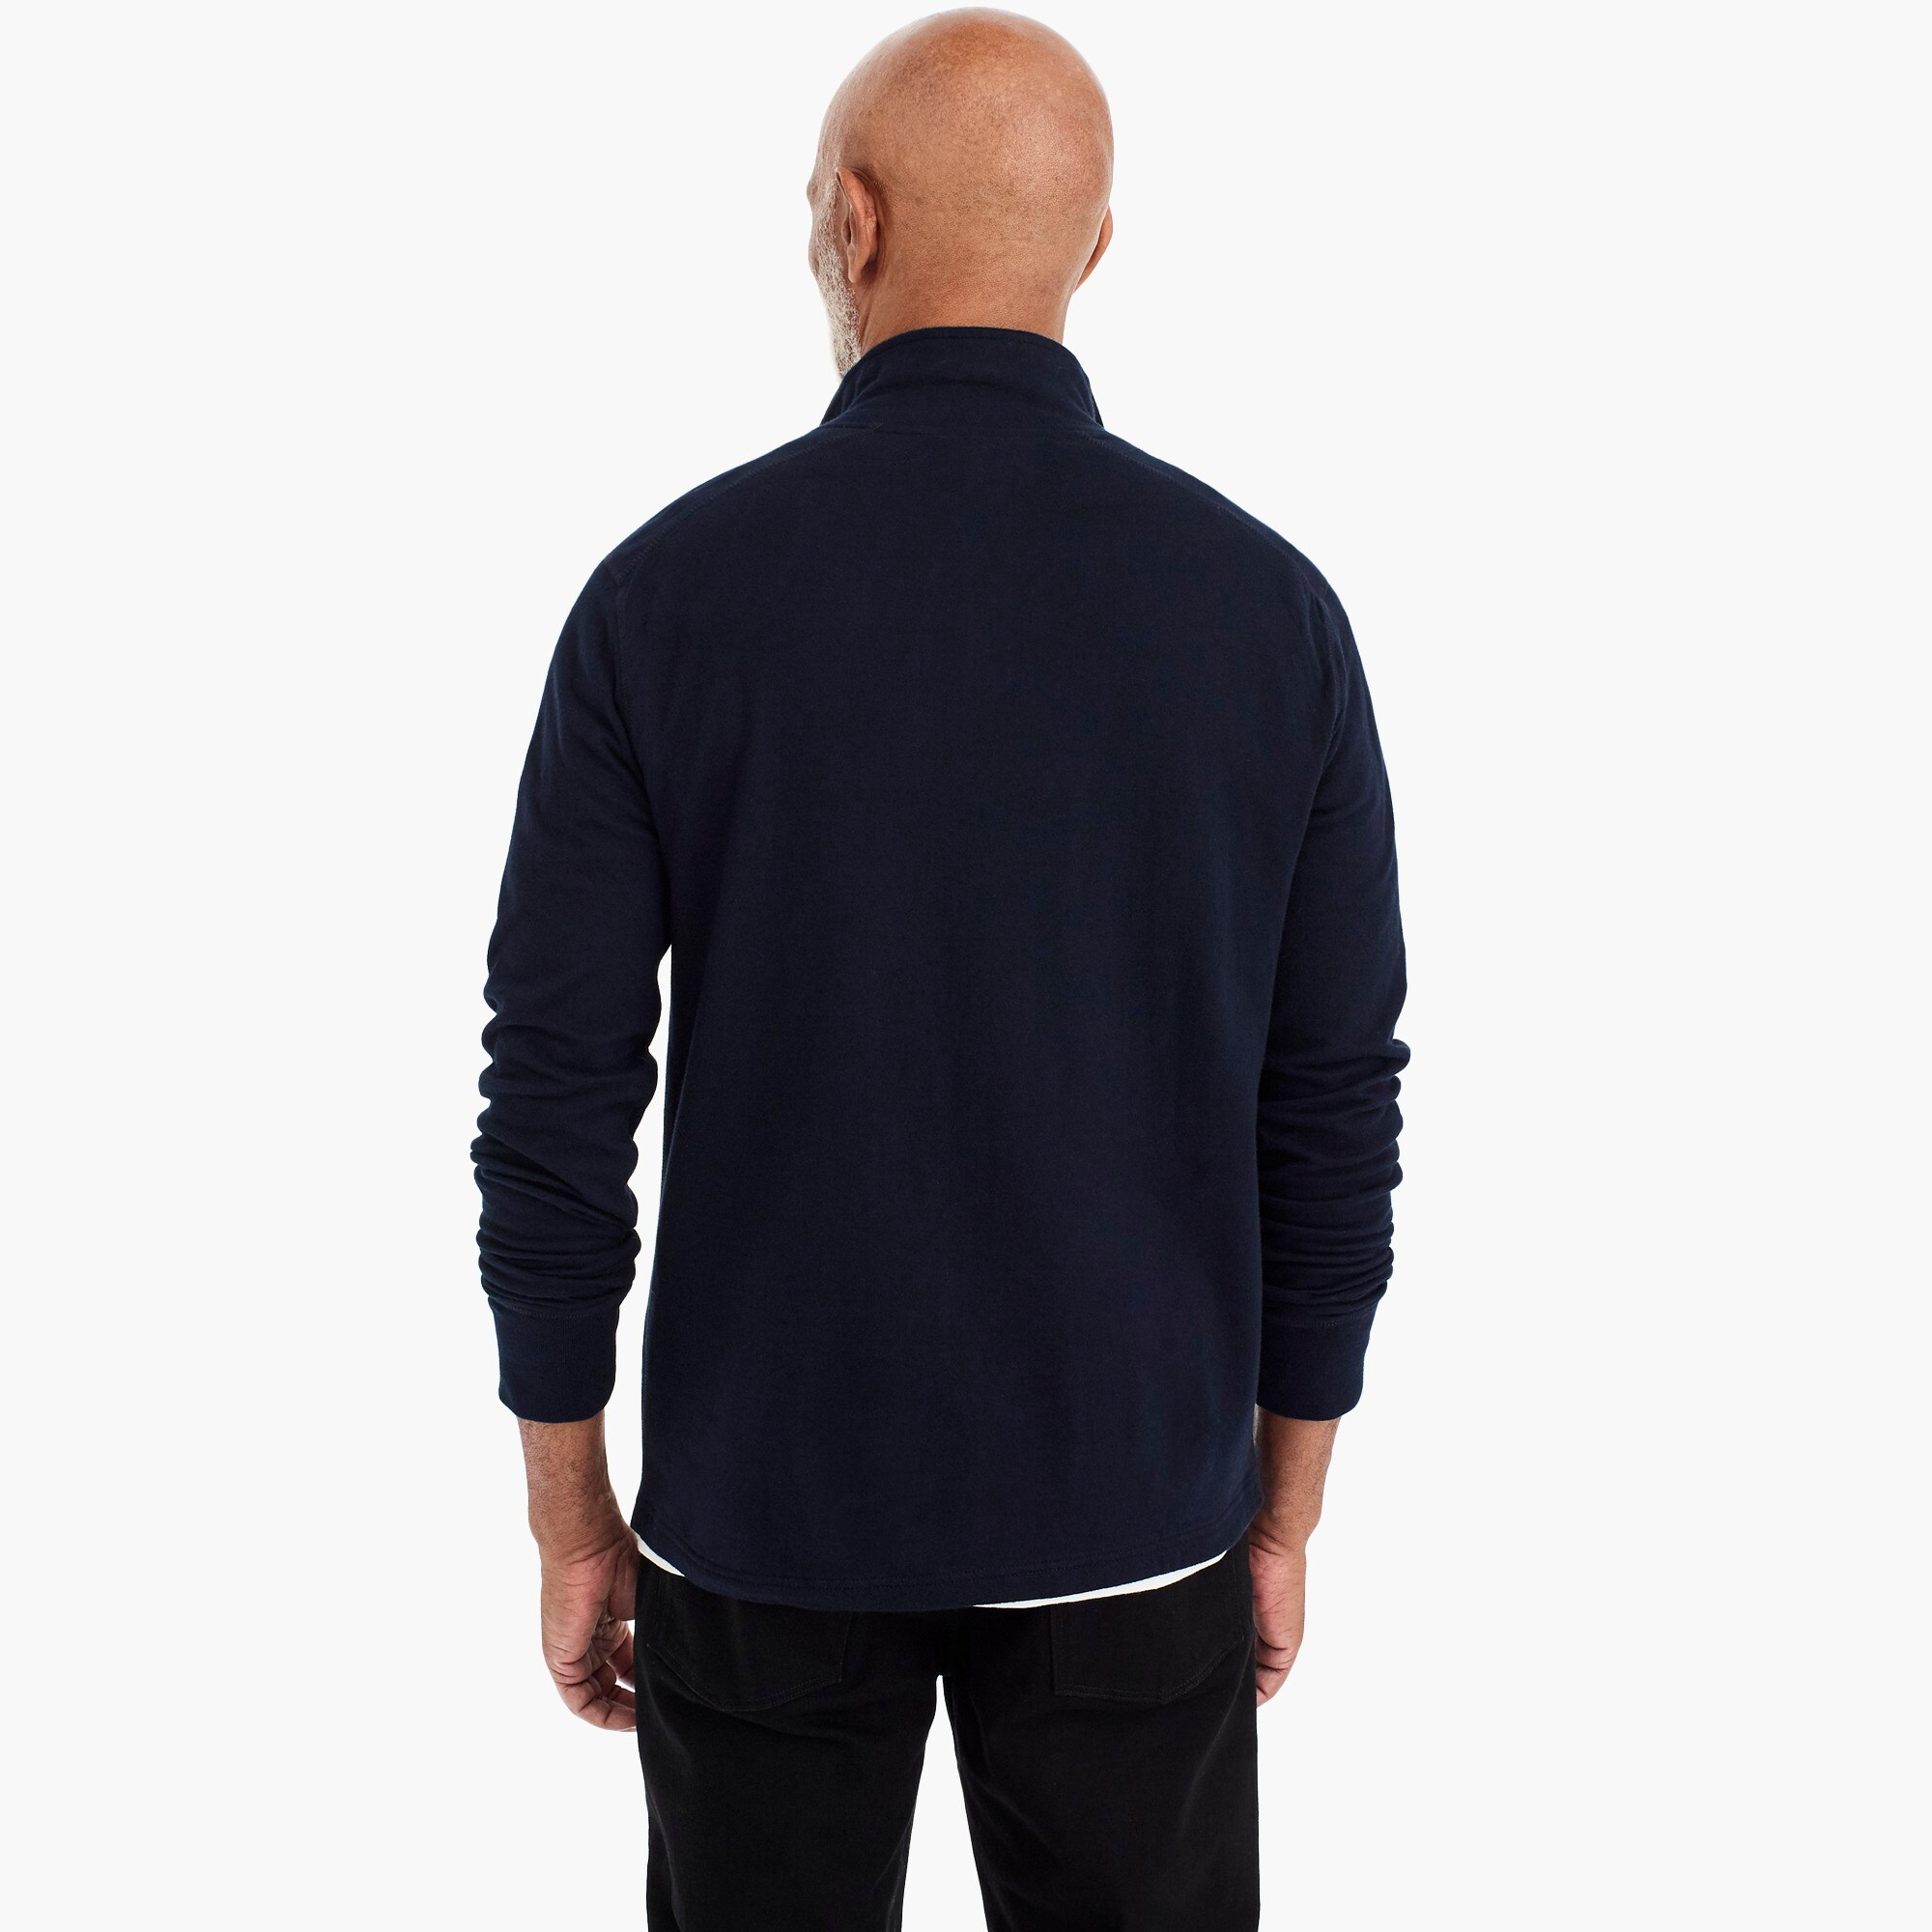 Image 4 for Tall double-knit half-zip pullover